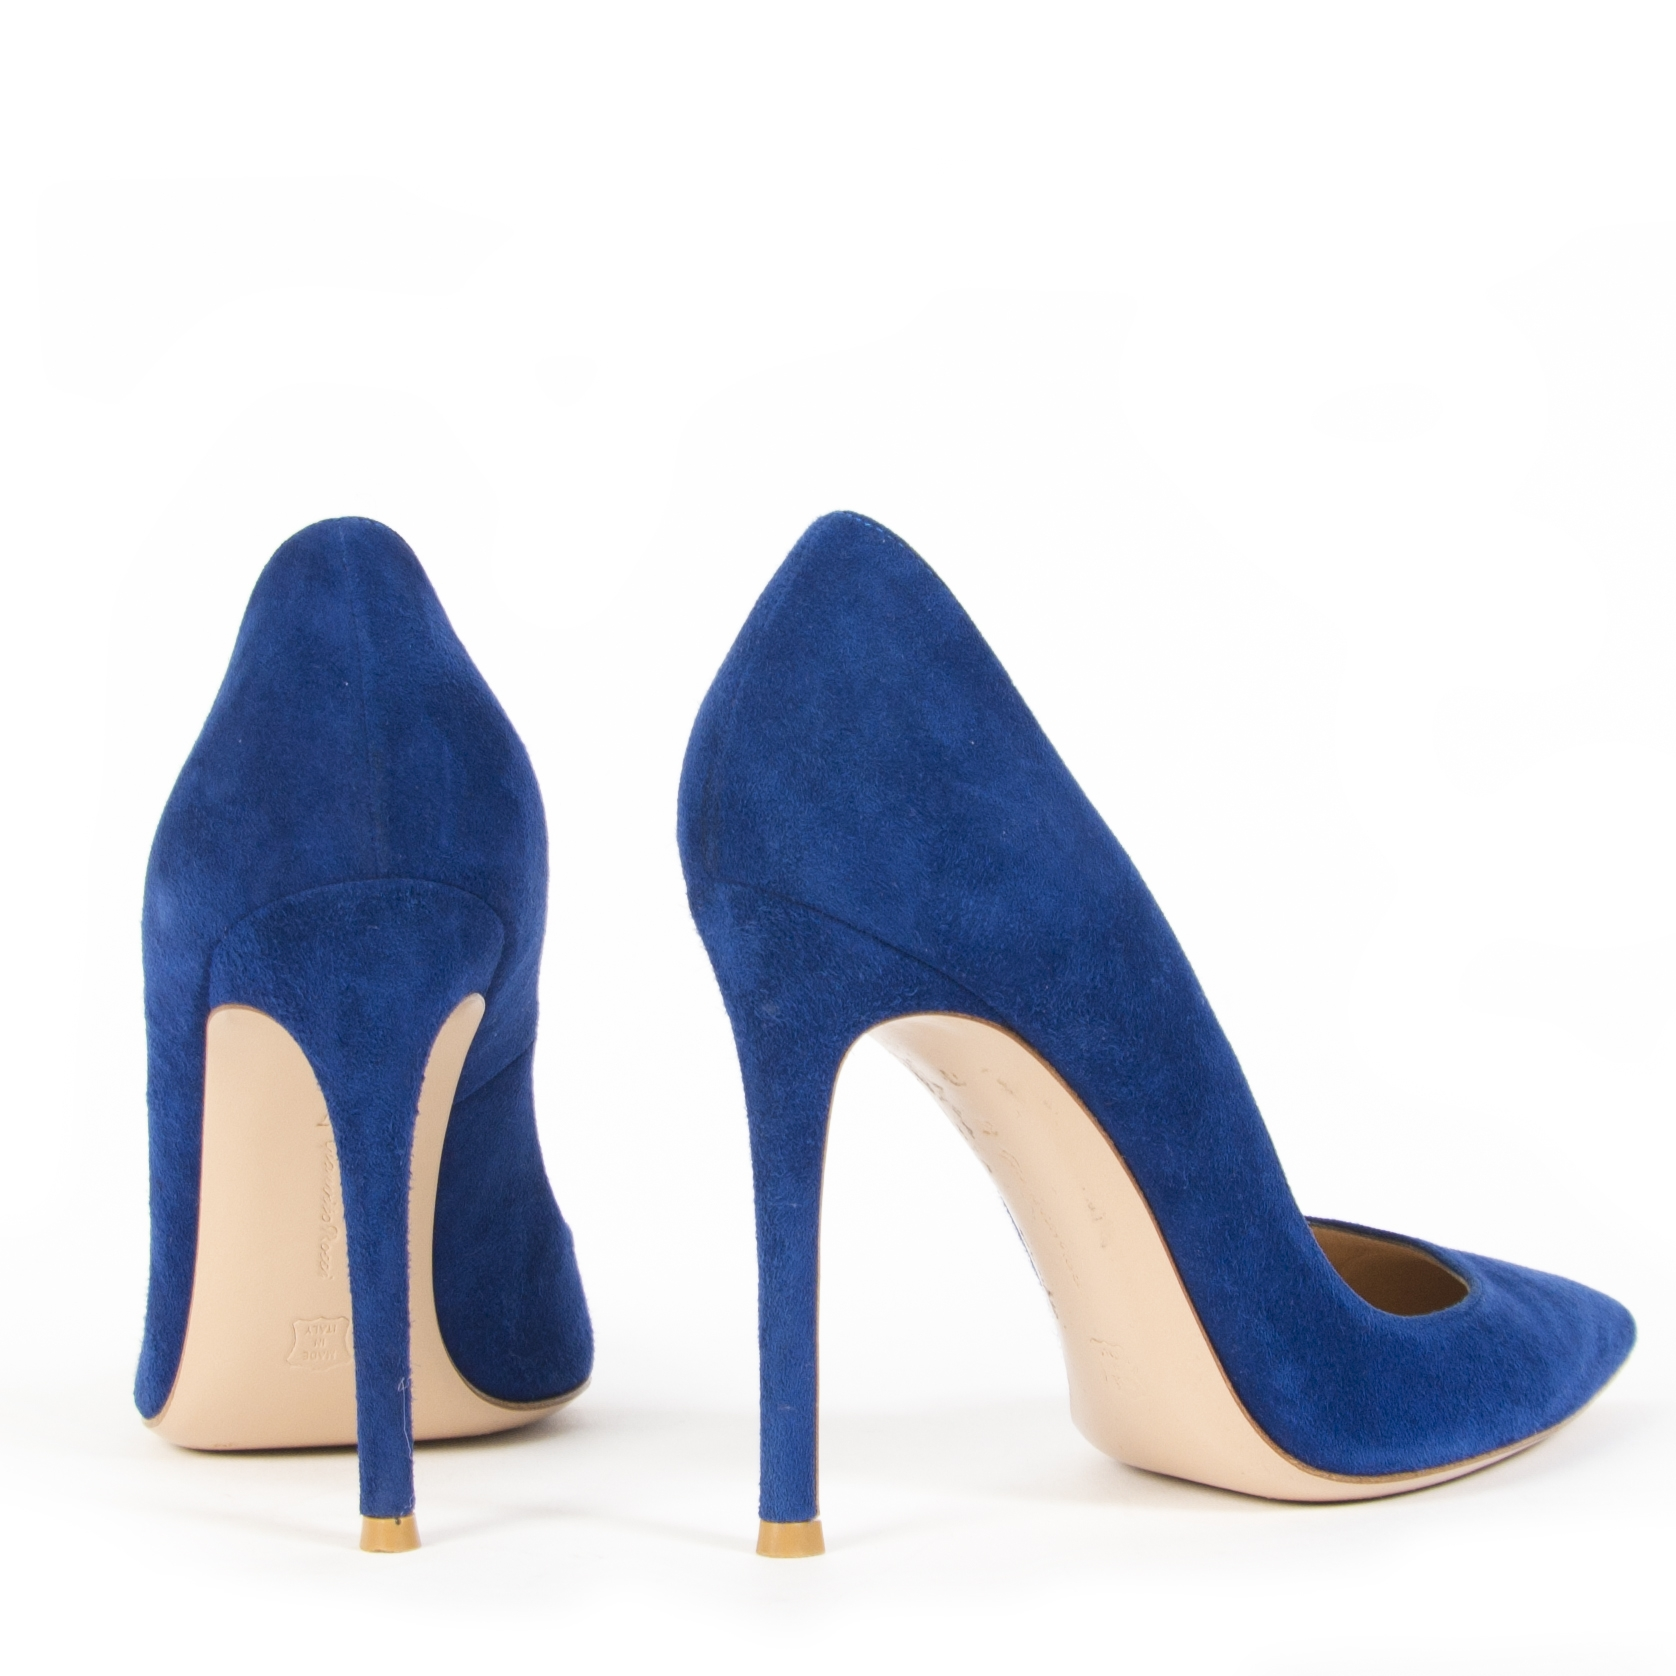 Gianvitto Rossi Suede Cobalt Blue Pumps - Size 37